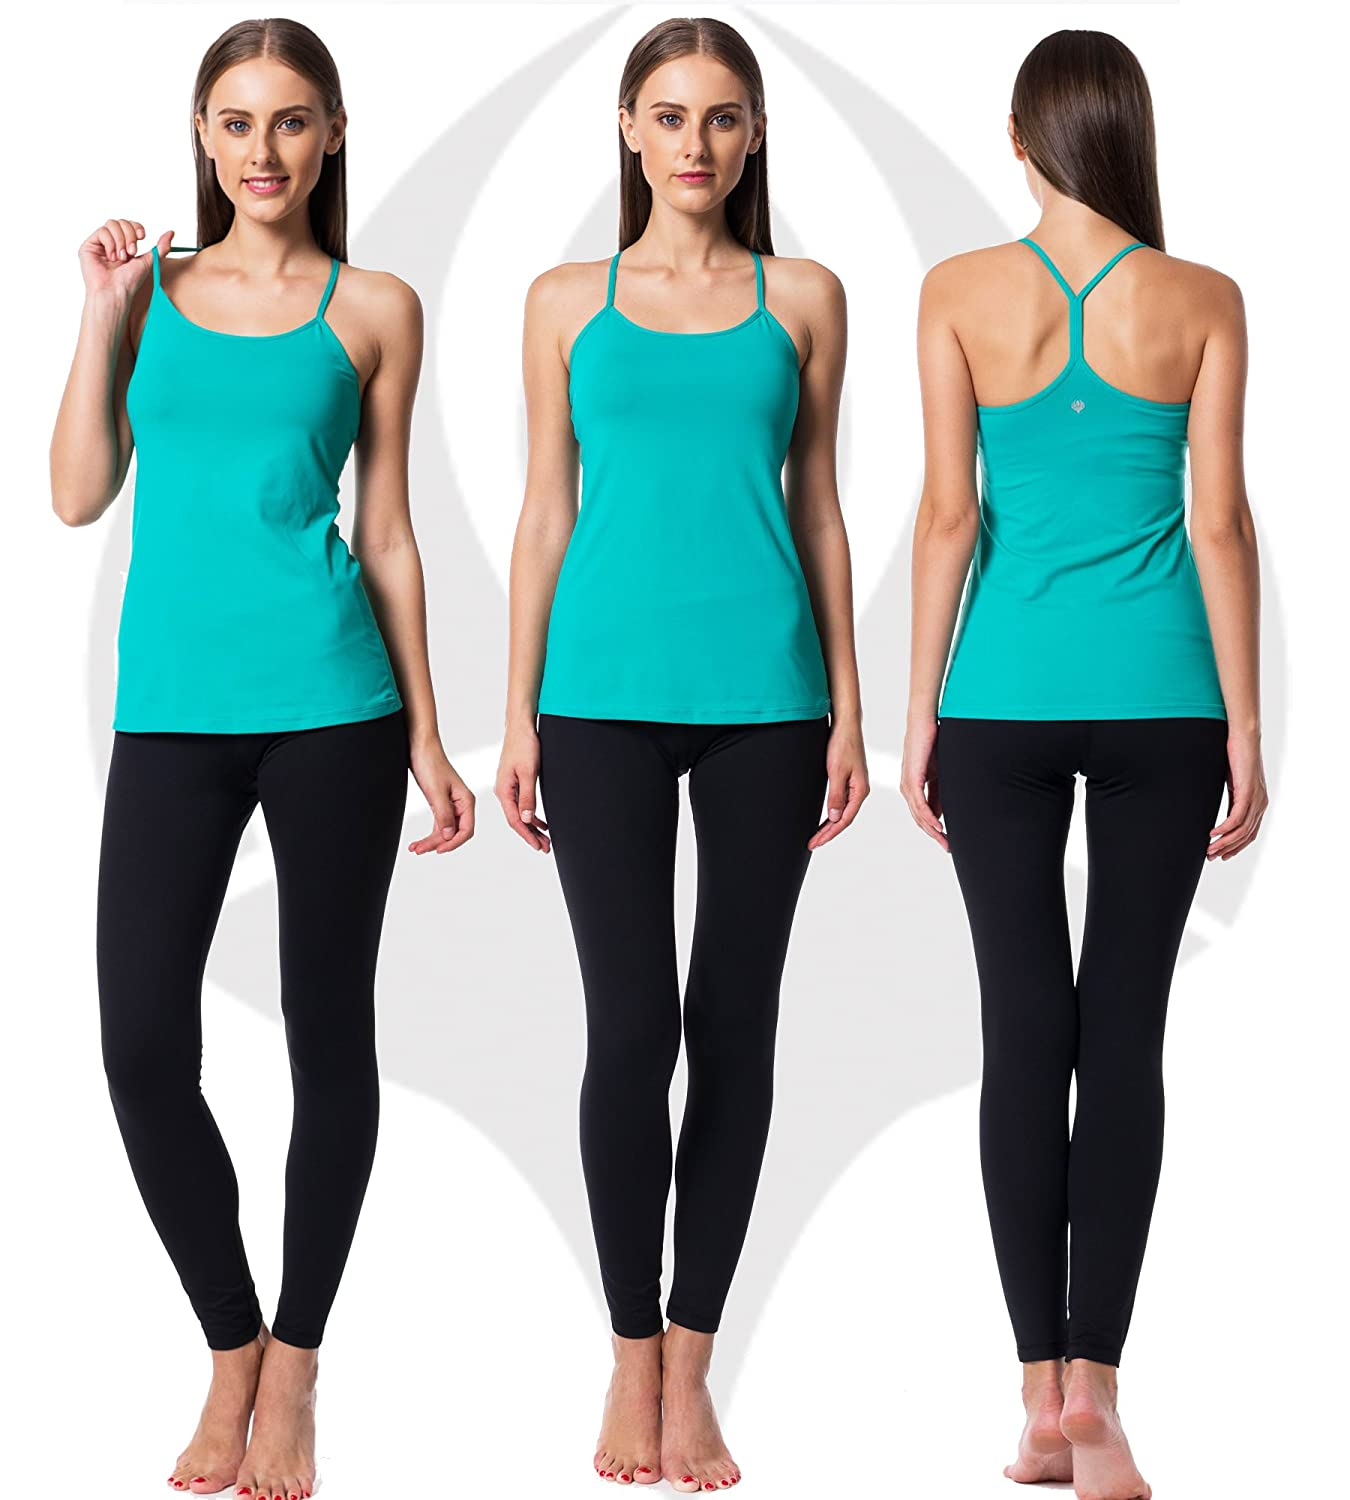 Guely Ray Women Active Workout Yoga Running Tanks Tops Y Racerback Dry Fit 1 2 Pack